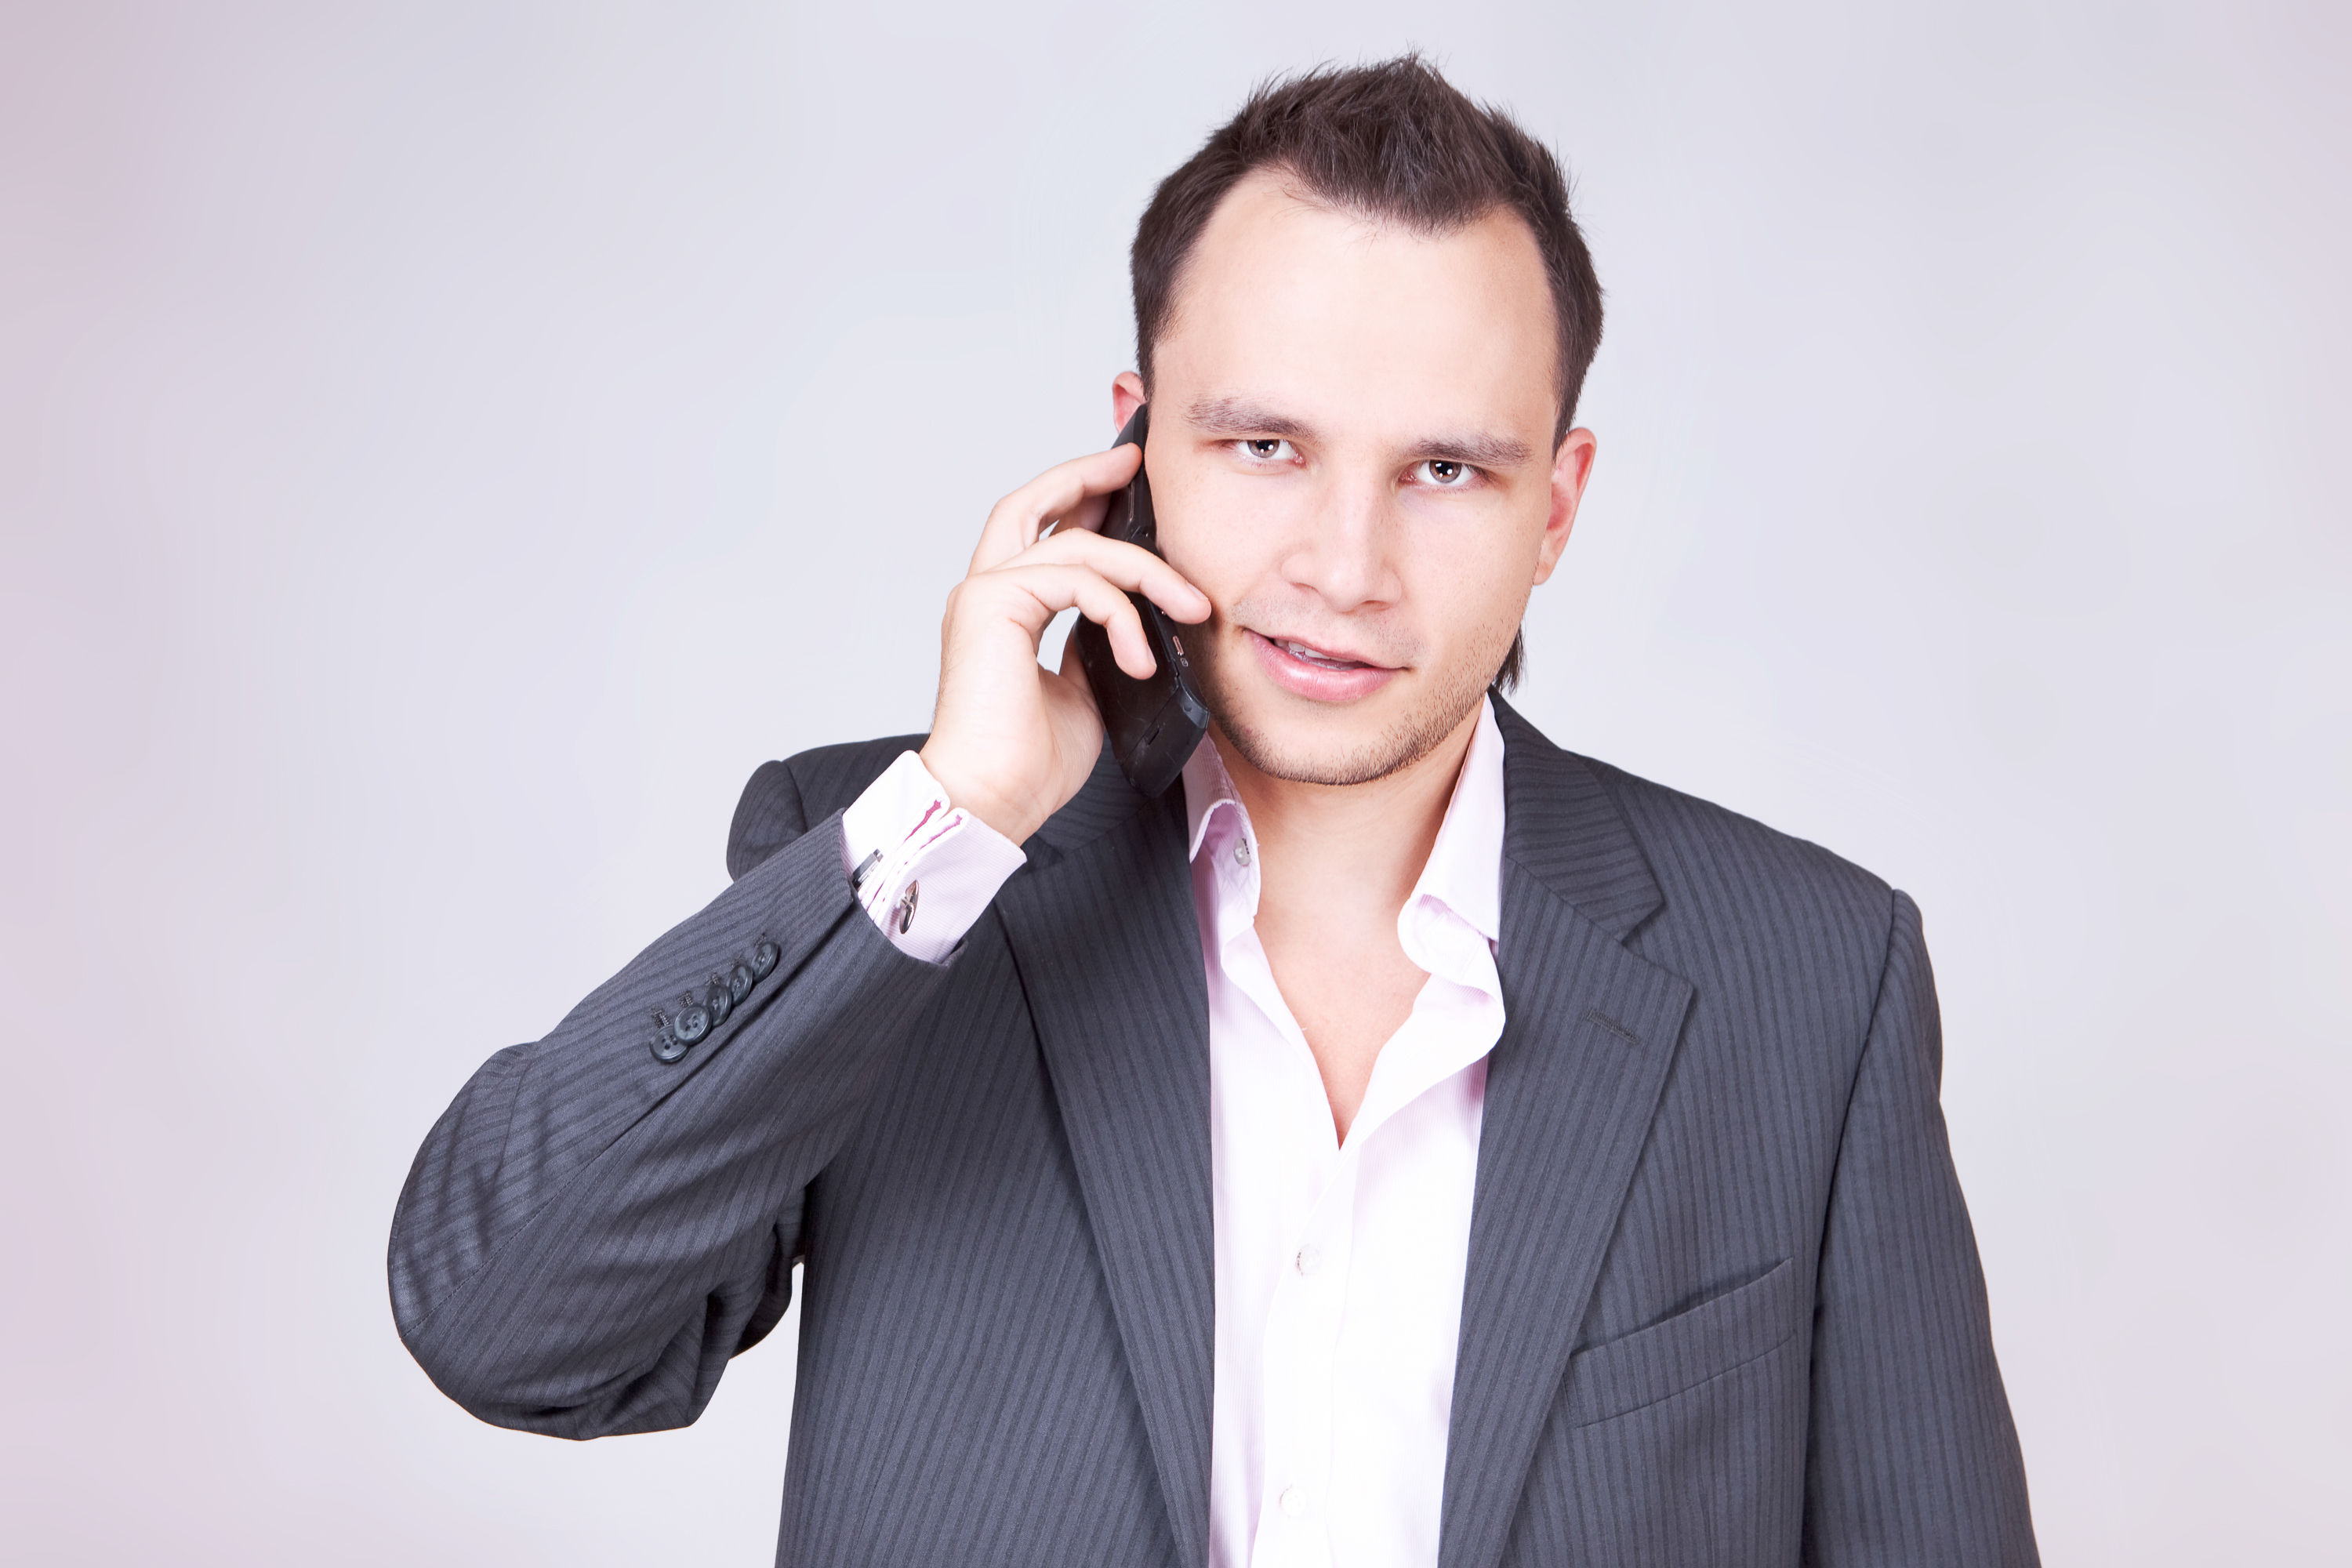 Businessman on the Phone, Adult, Mobile, Talk, Studio, HQ Photo